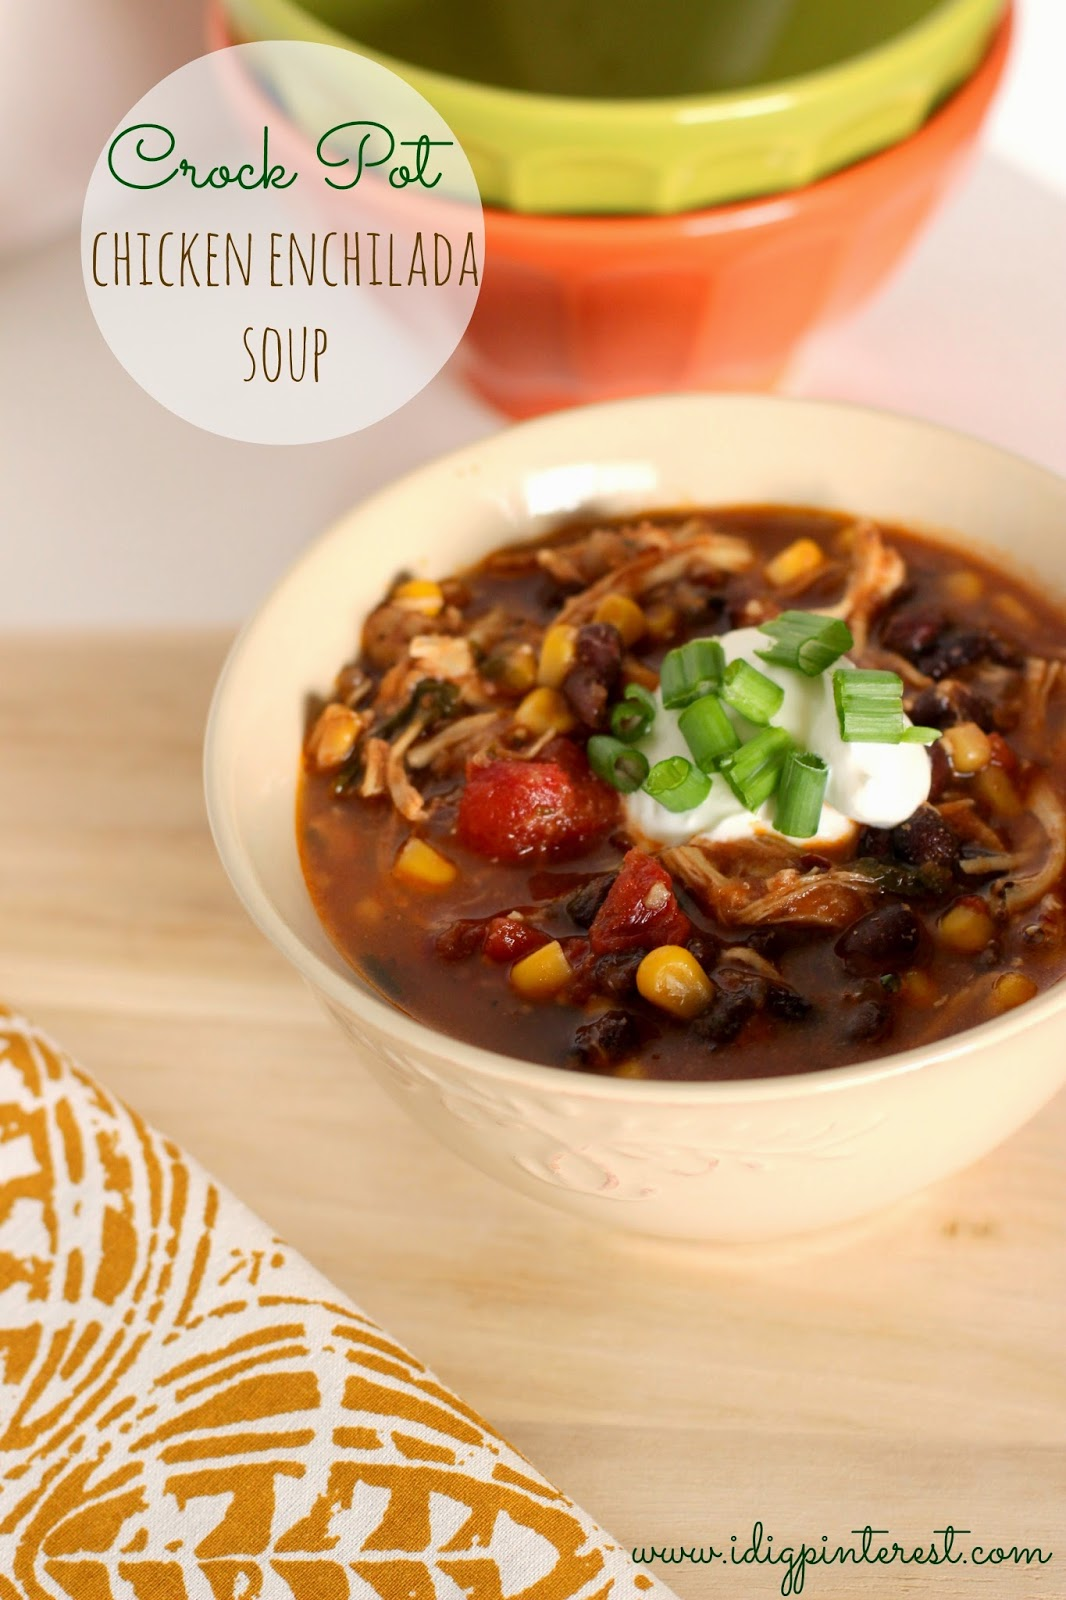 Dig Pinterest: Skinny Crock Pot Chicken Enchilada Soup